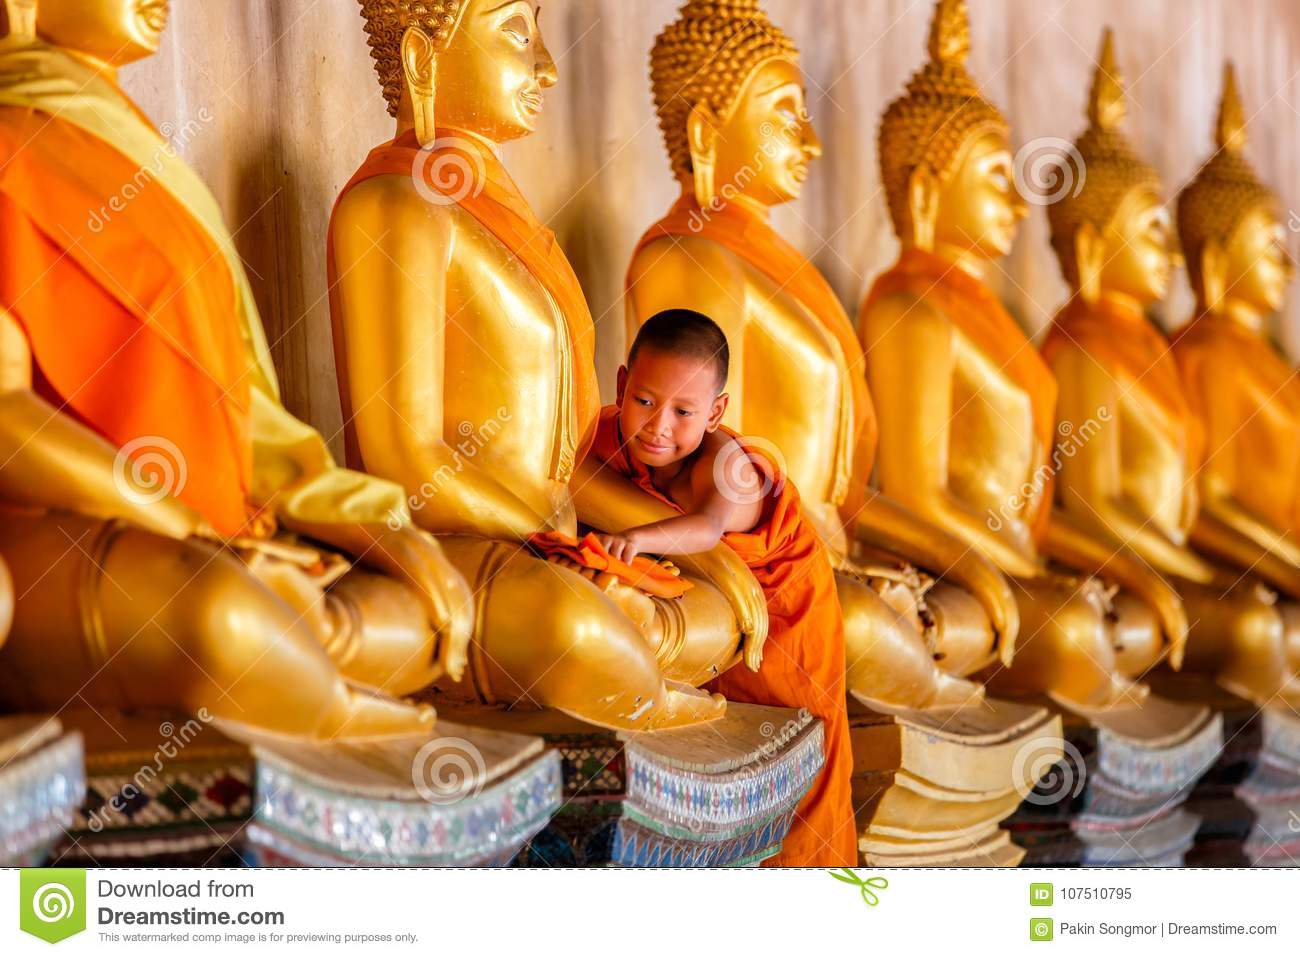 Young Novice monk scrubbing buddha statue at old temple in thailand